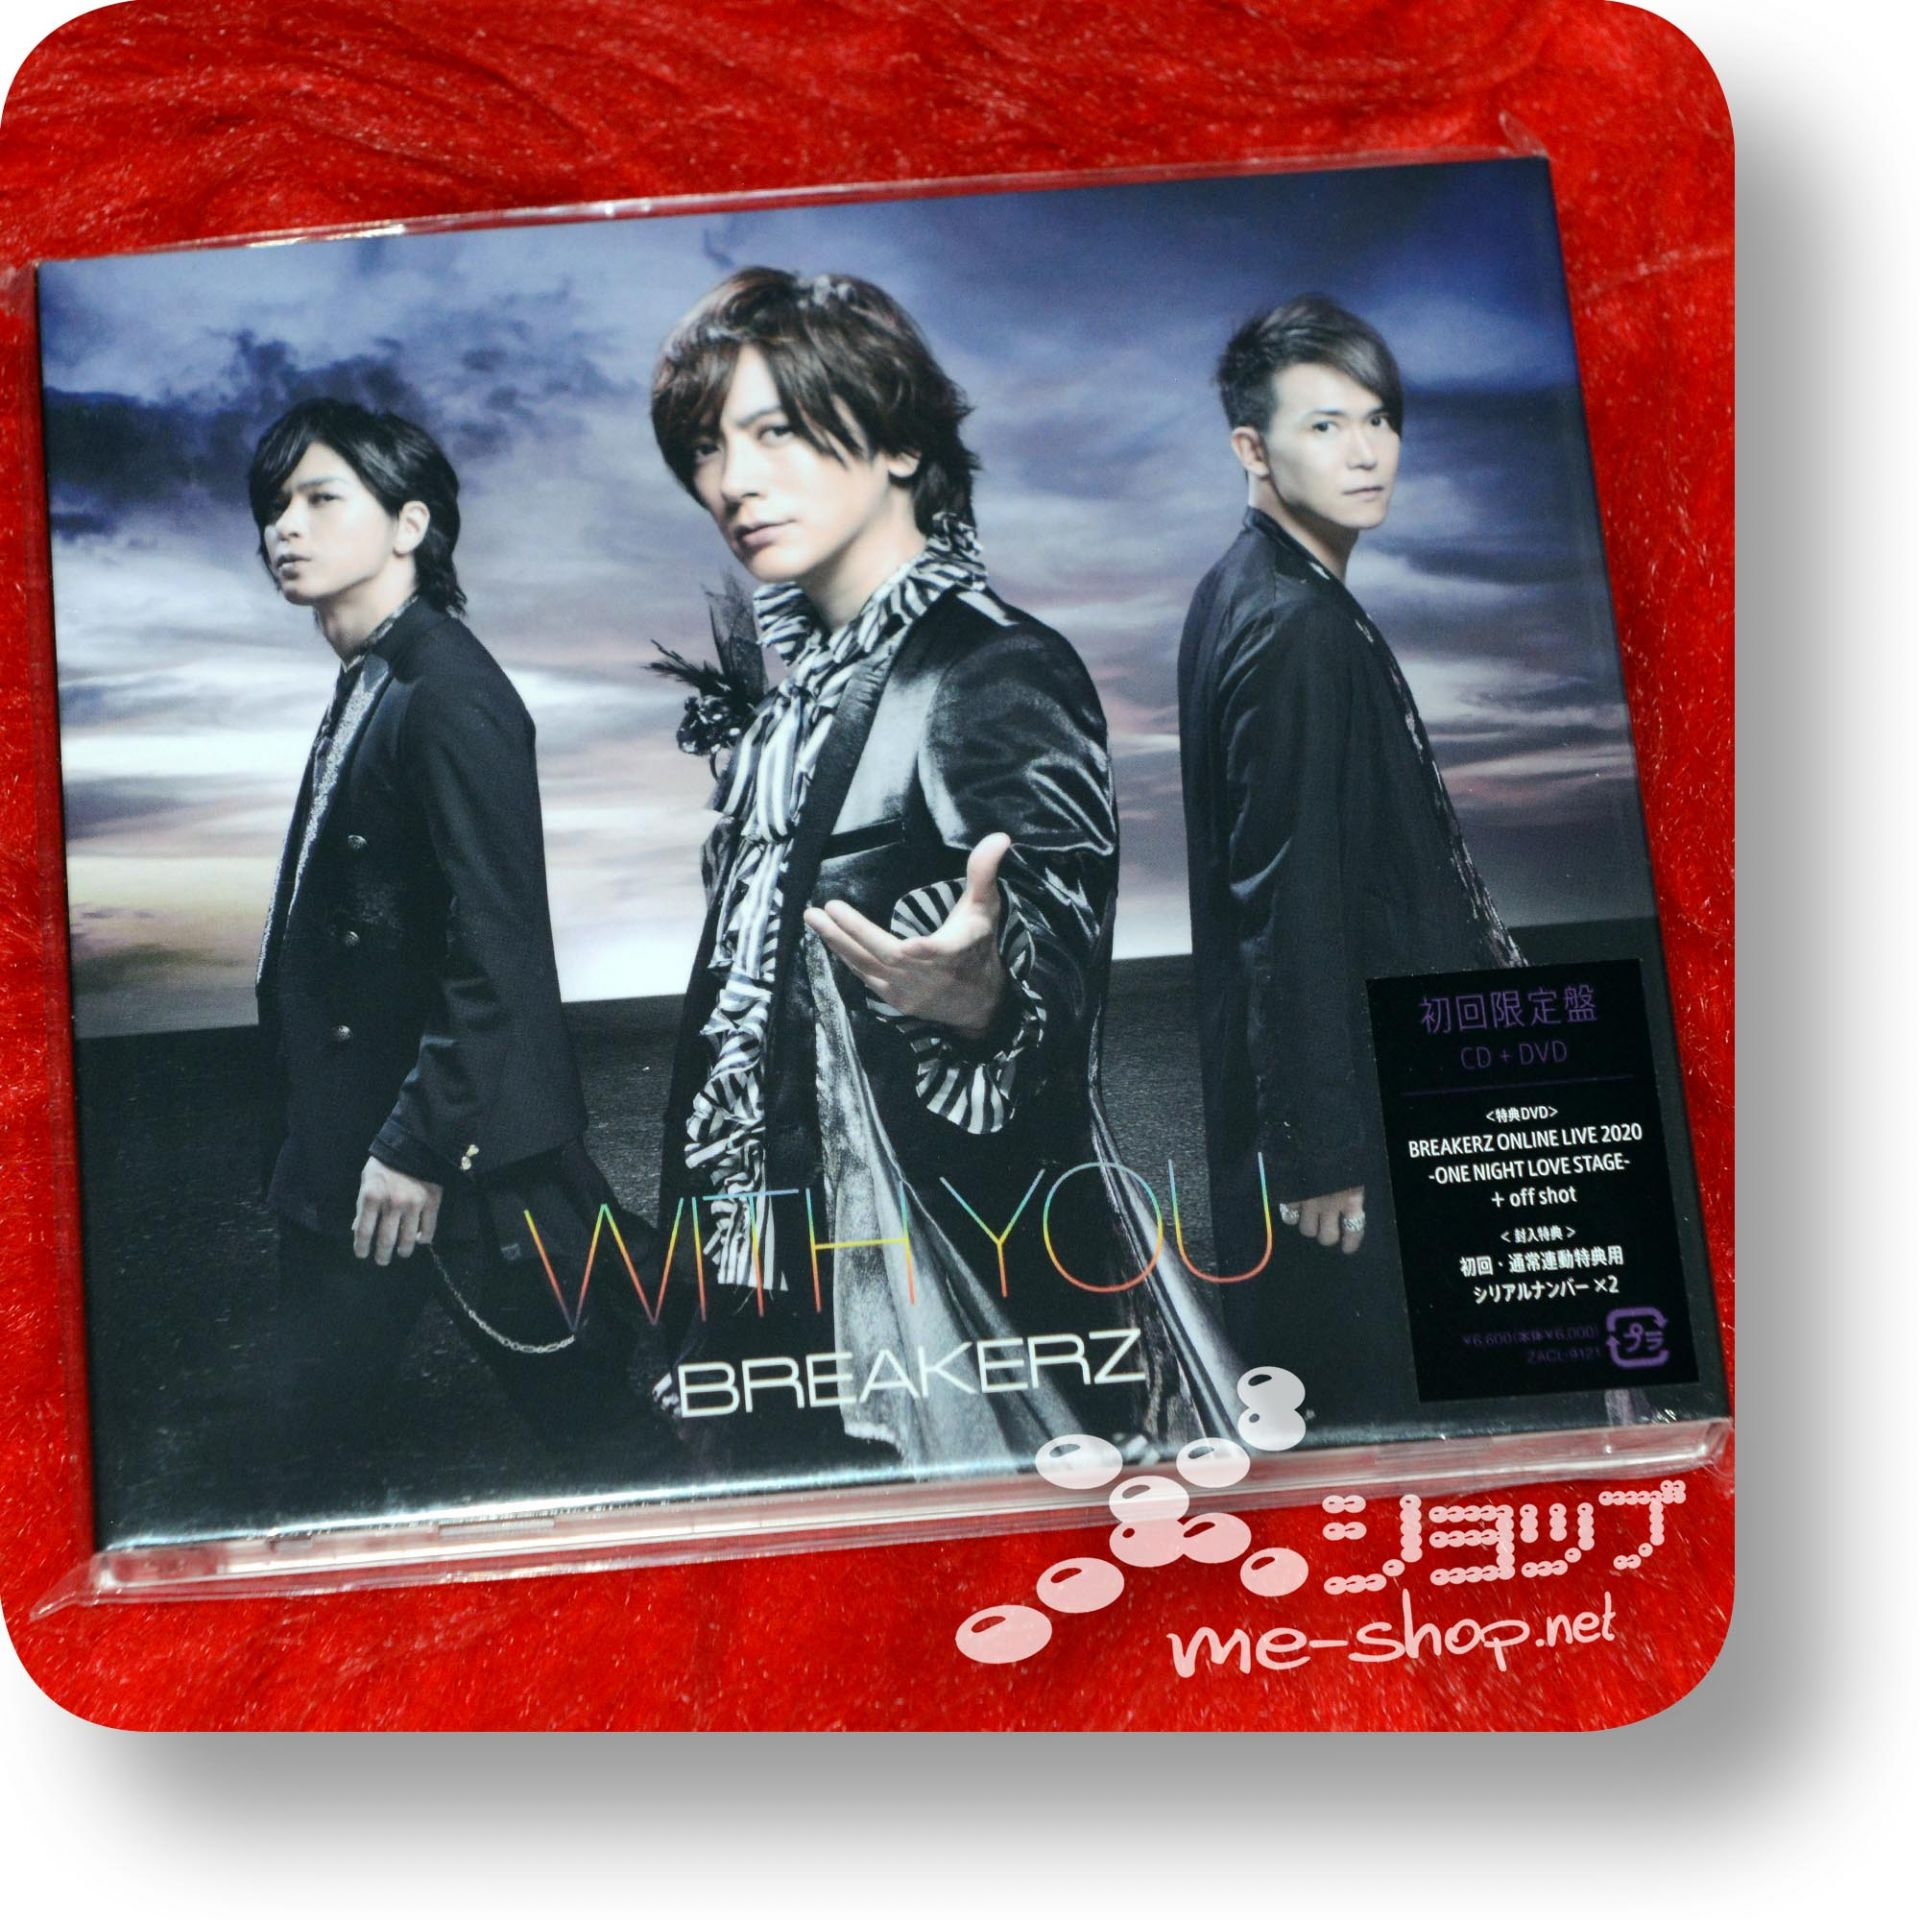 breakerz with you cd+dvd